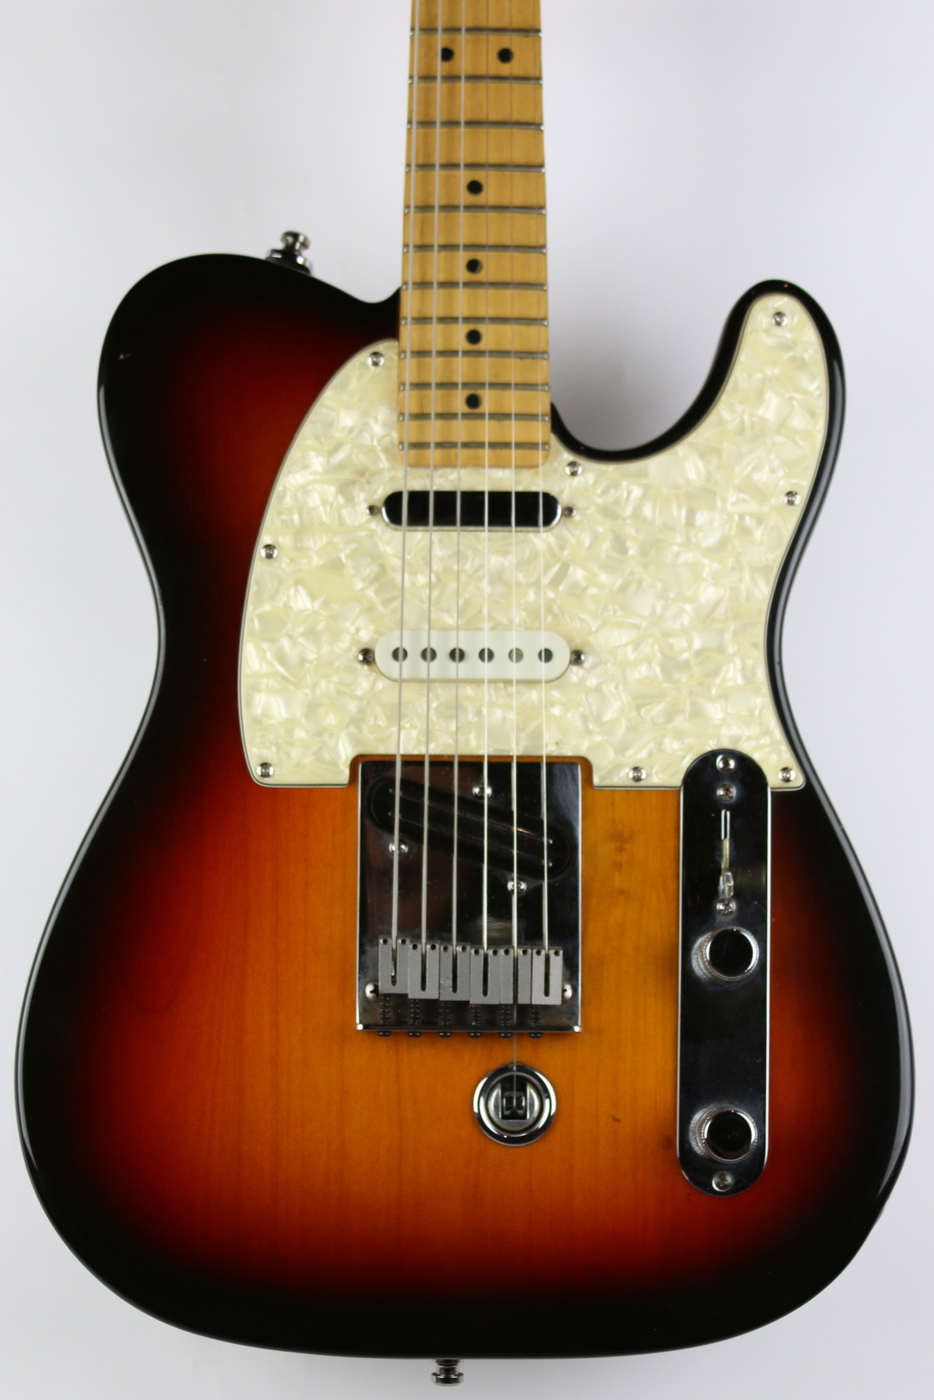 1999 fender b bender telecaster sunburst guitars electric solid body thunder road guitars. Black Bedroom Furniture Sets. Home Design Ideas